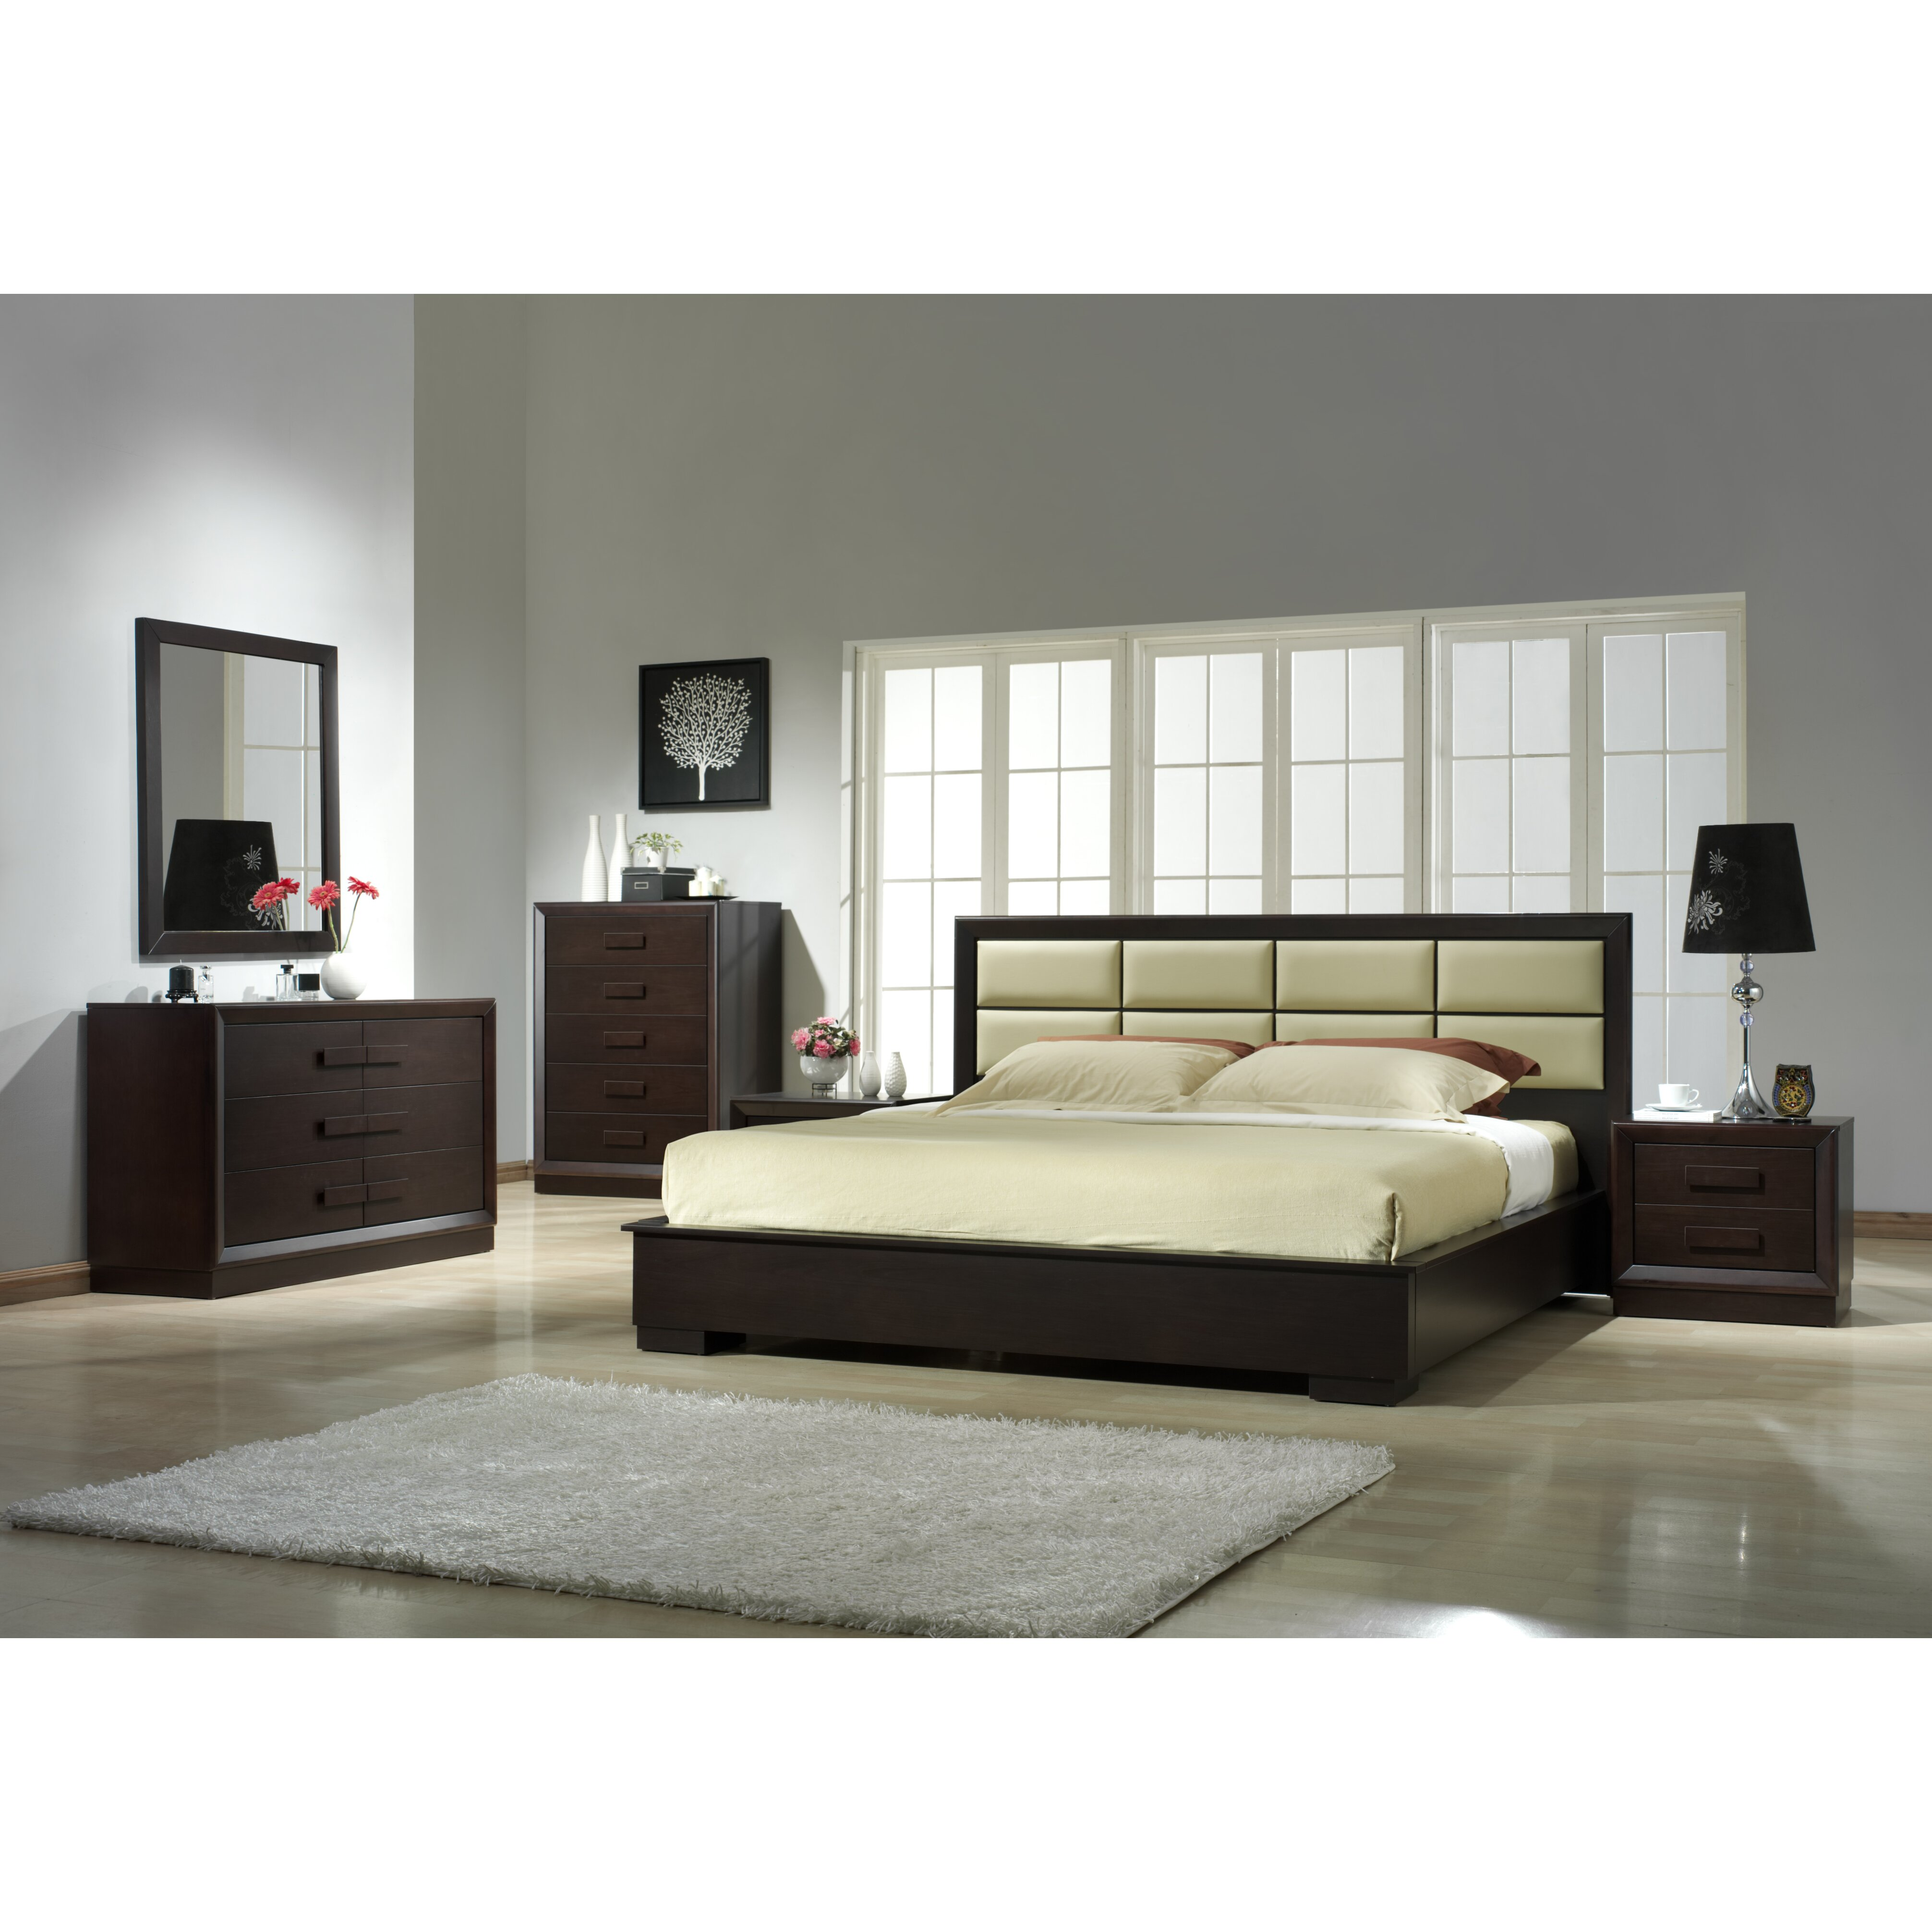 Low Bedroom Furniture White Lacquer Bedroom Furniture Canada Best Bedroom Ideas 2017